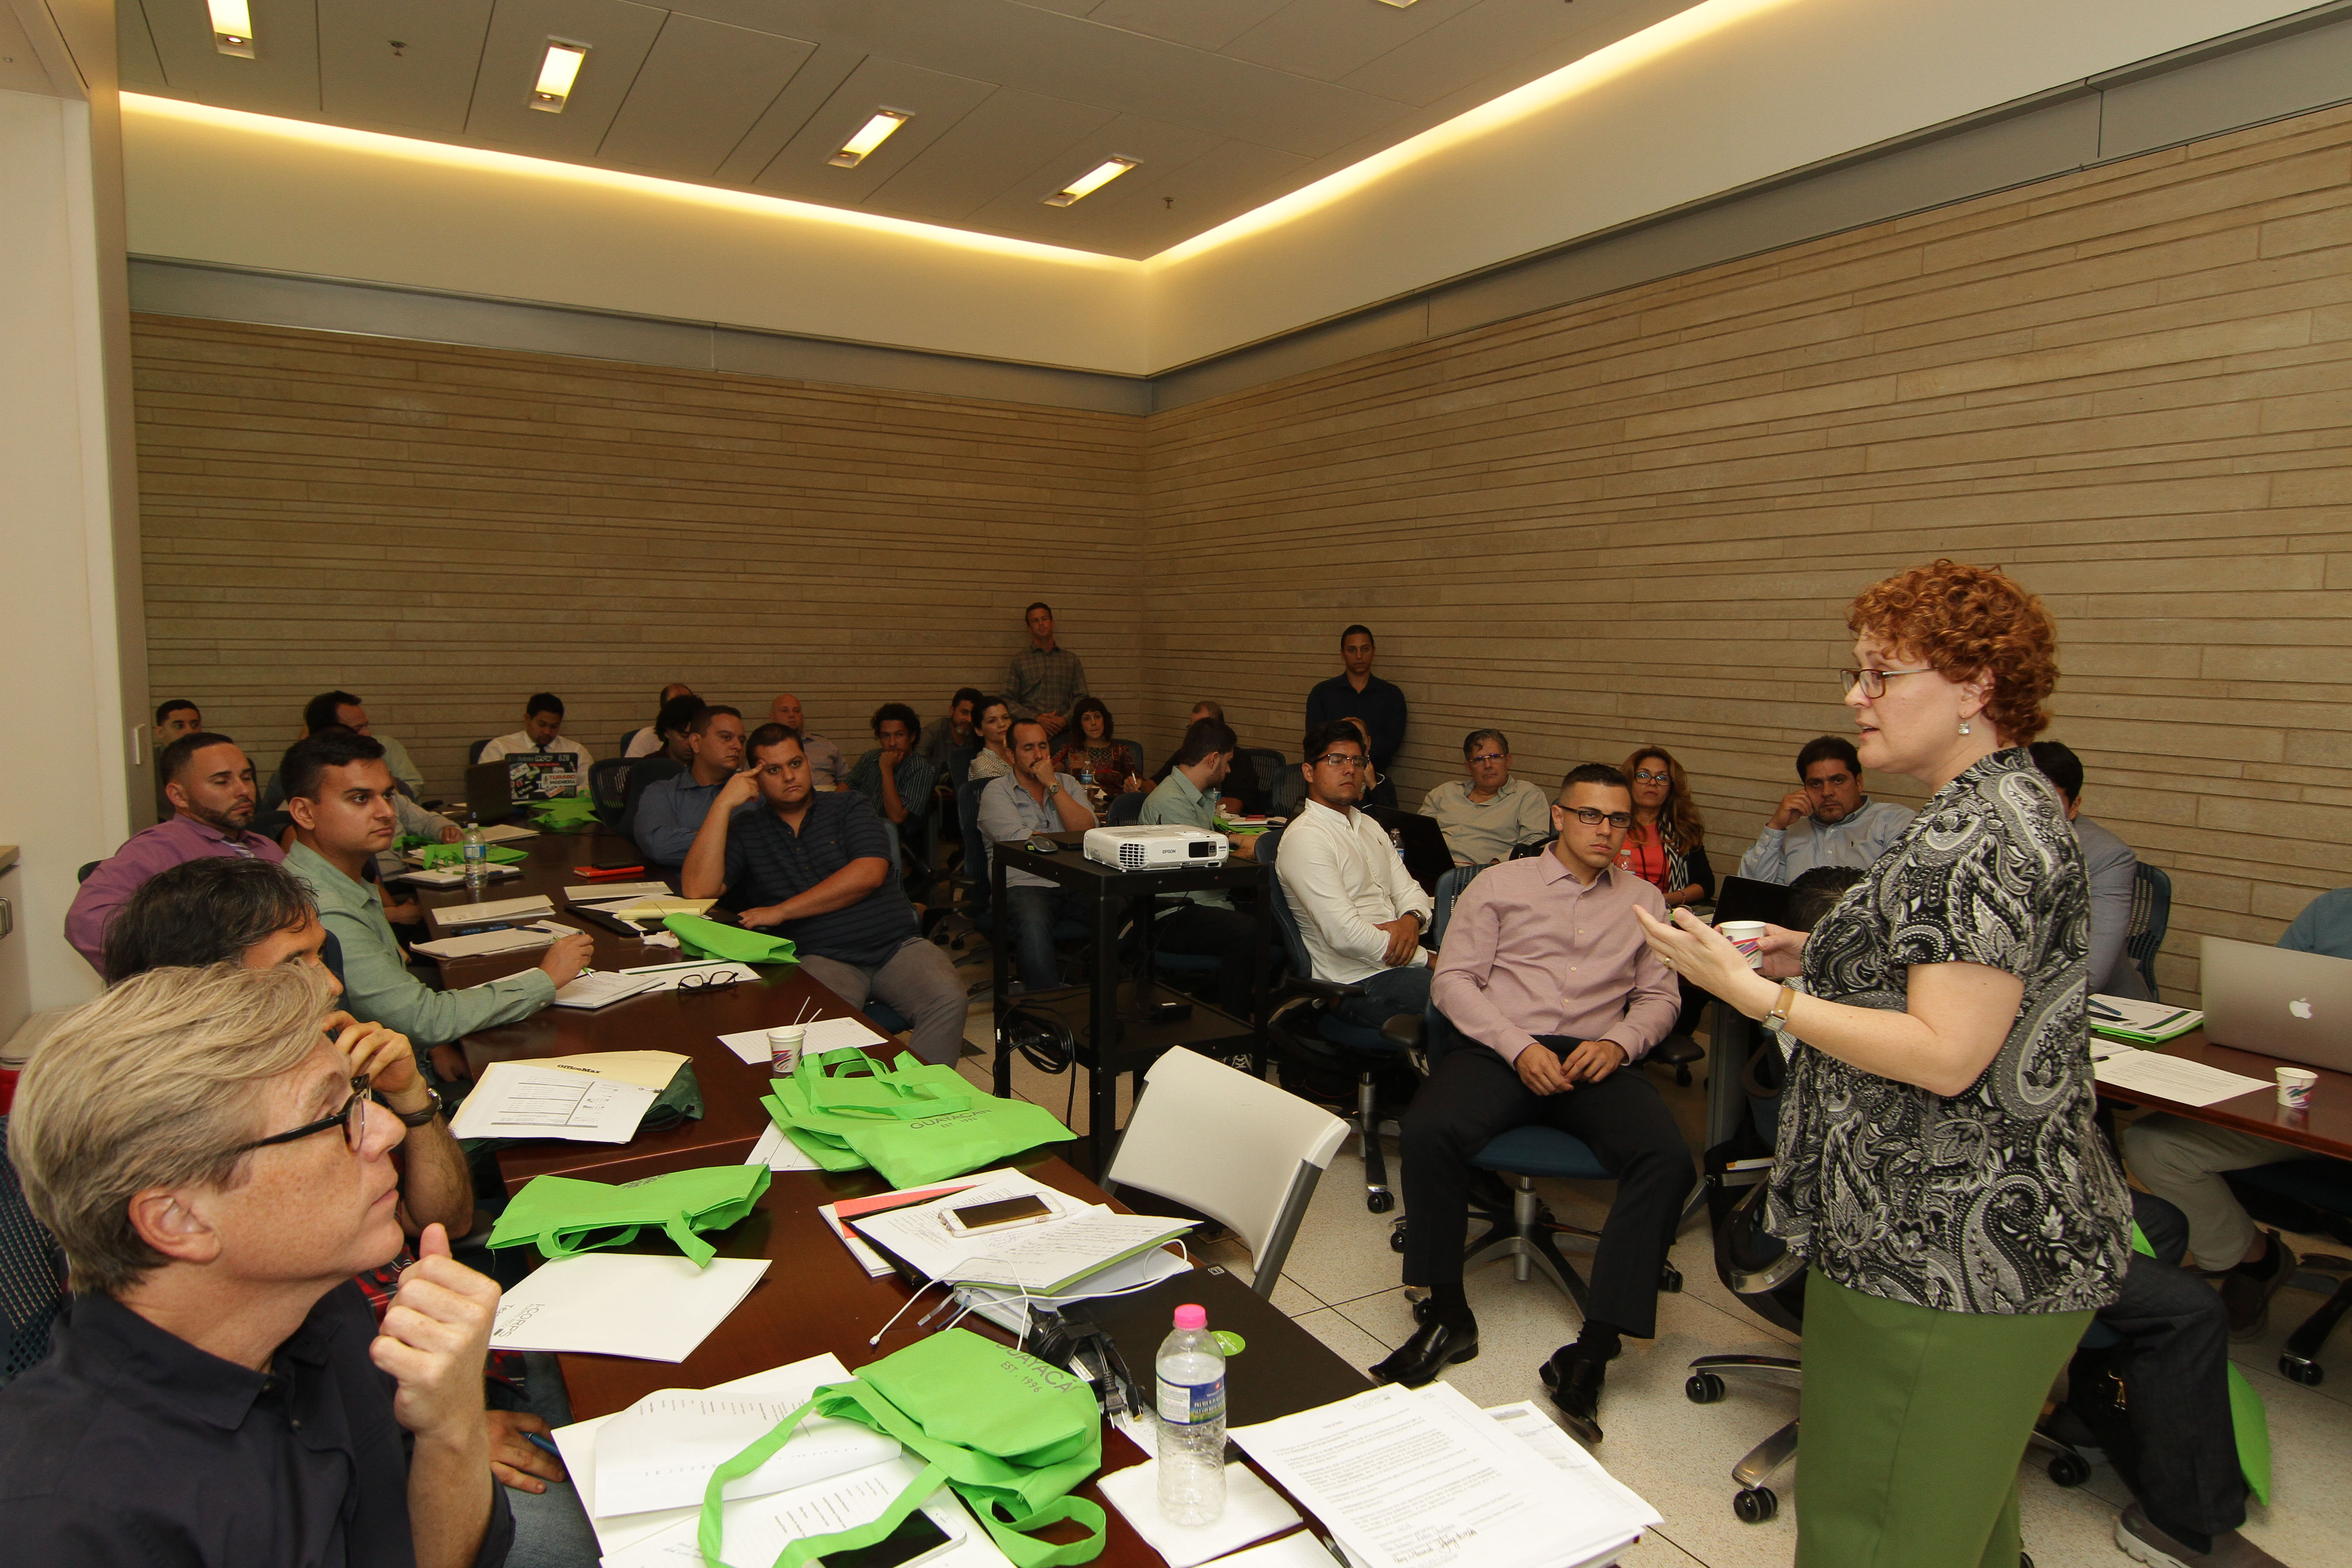 Brandy Nagel, an entrepreneur educator at Georgia Tech's VentureLab incubator and I-Corps instructor, leads a class in Puerto Rico.